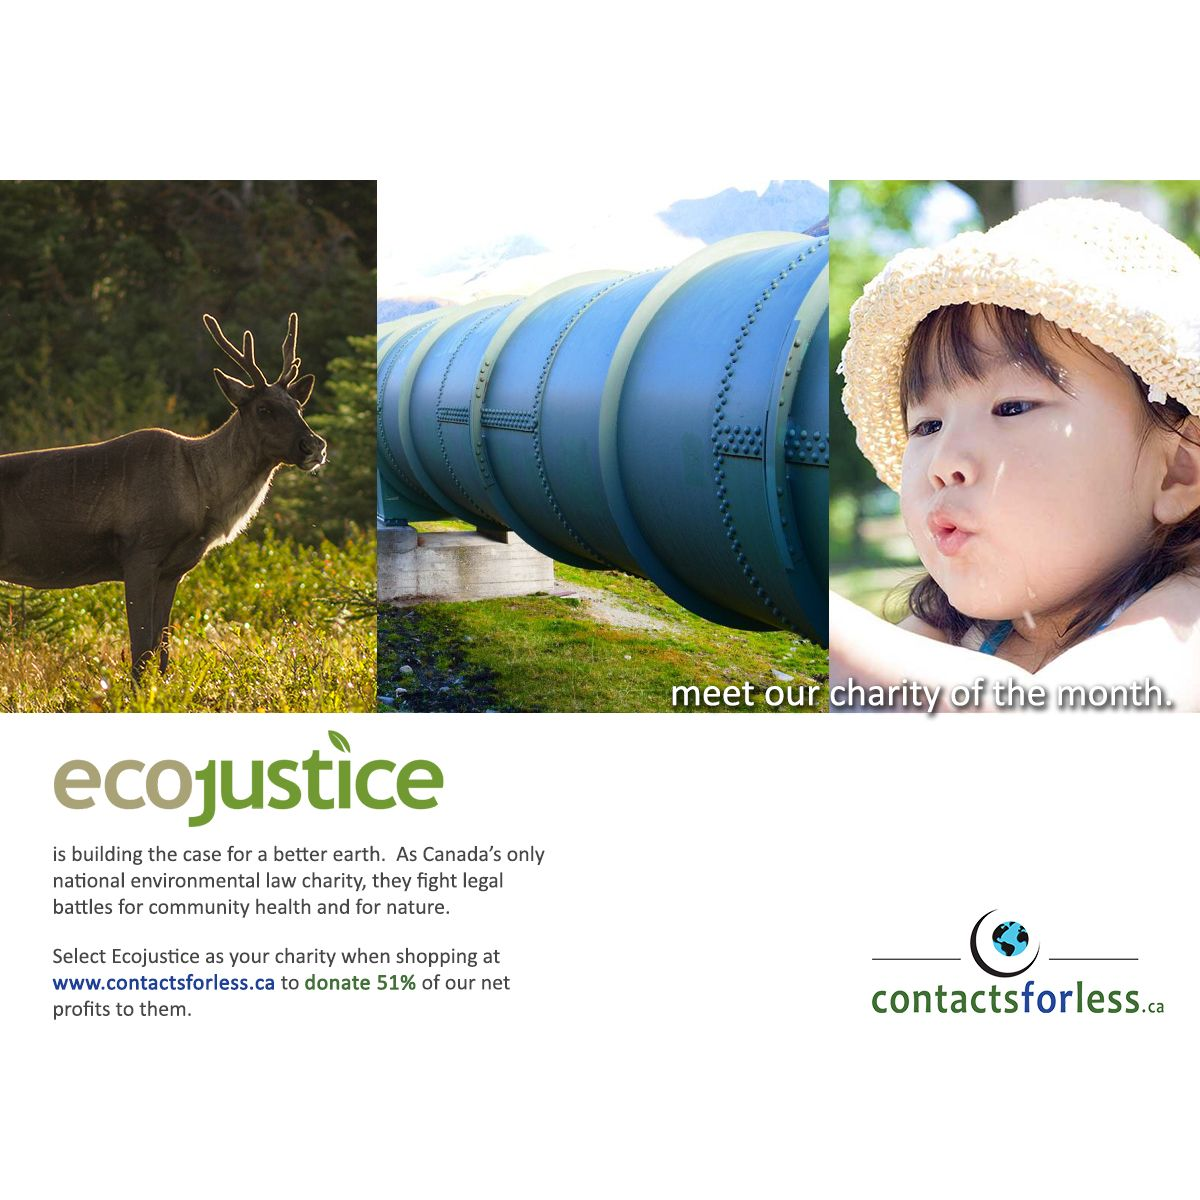 Ecojustice is building the case for a better earth. They